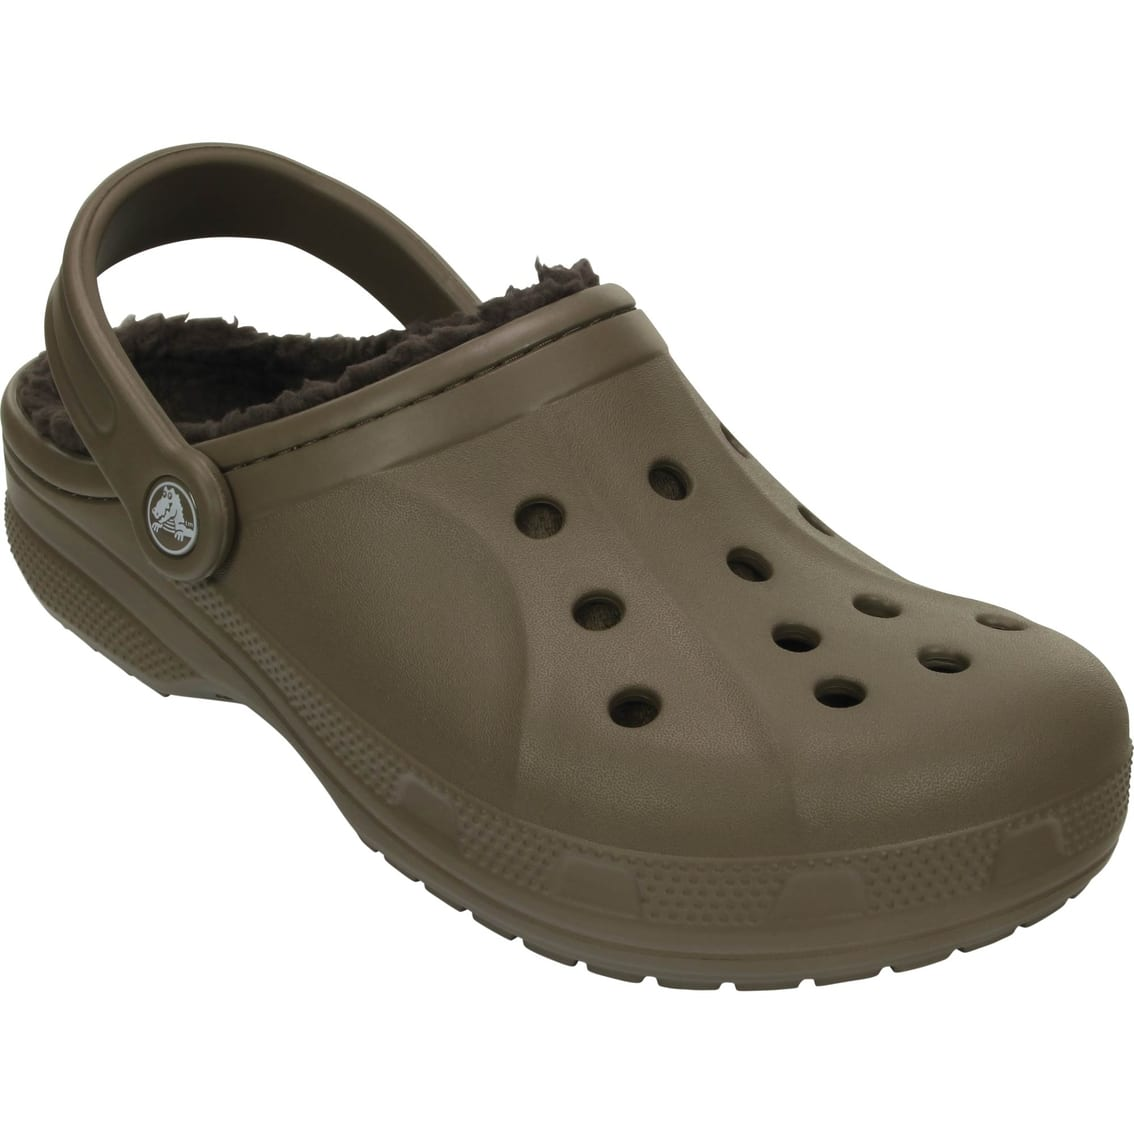 Crocs Winter Clogs from $11.23 at AAFES The Exchange (Military Only)